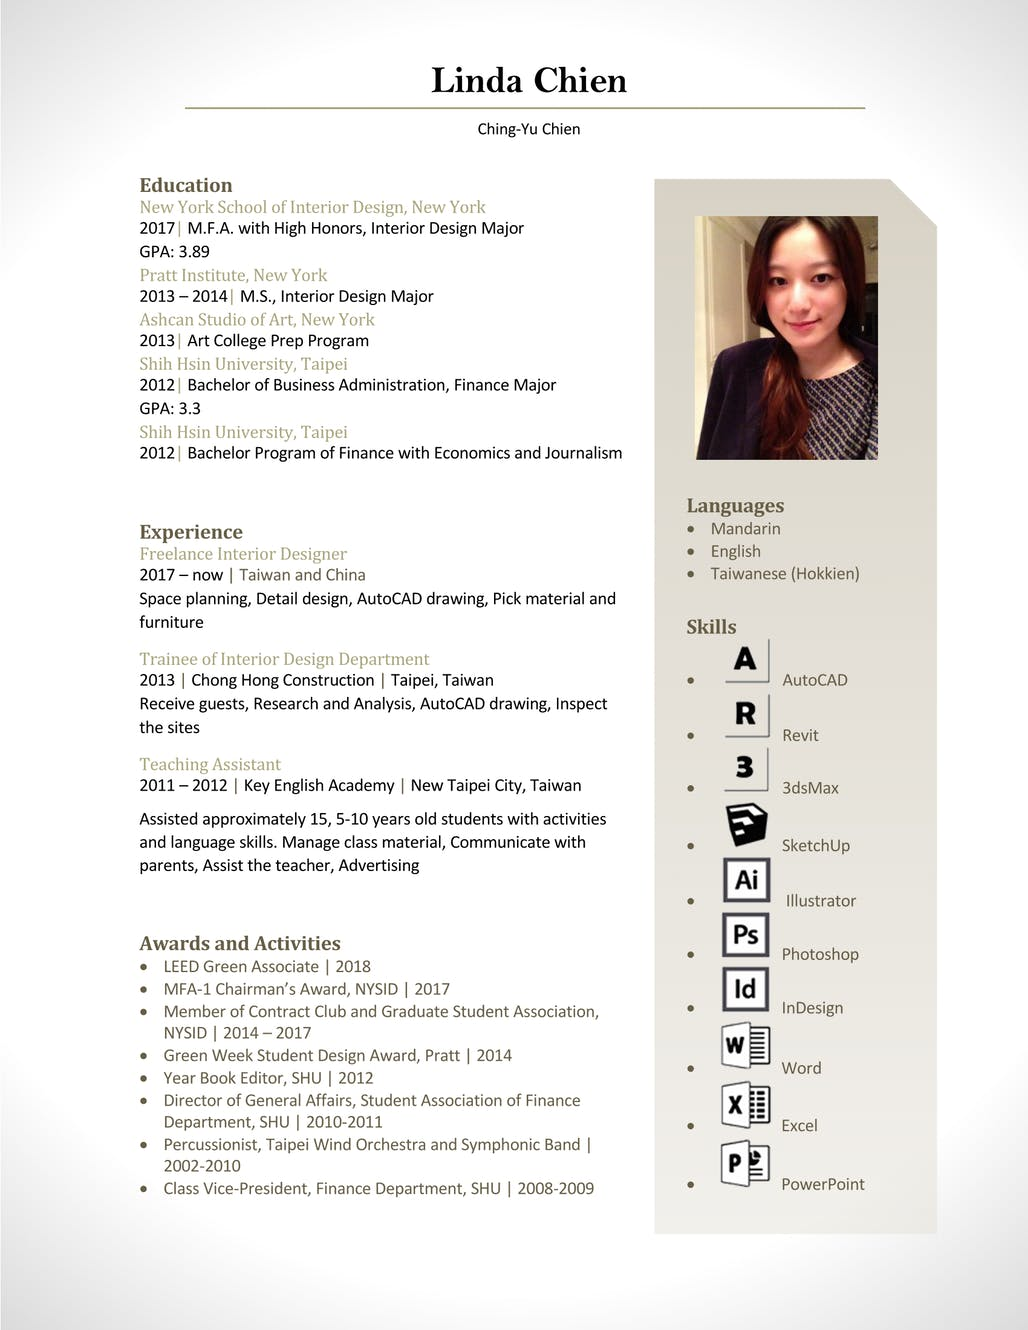 Linda Chien Archinect